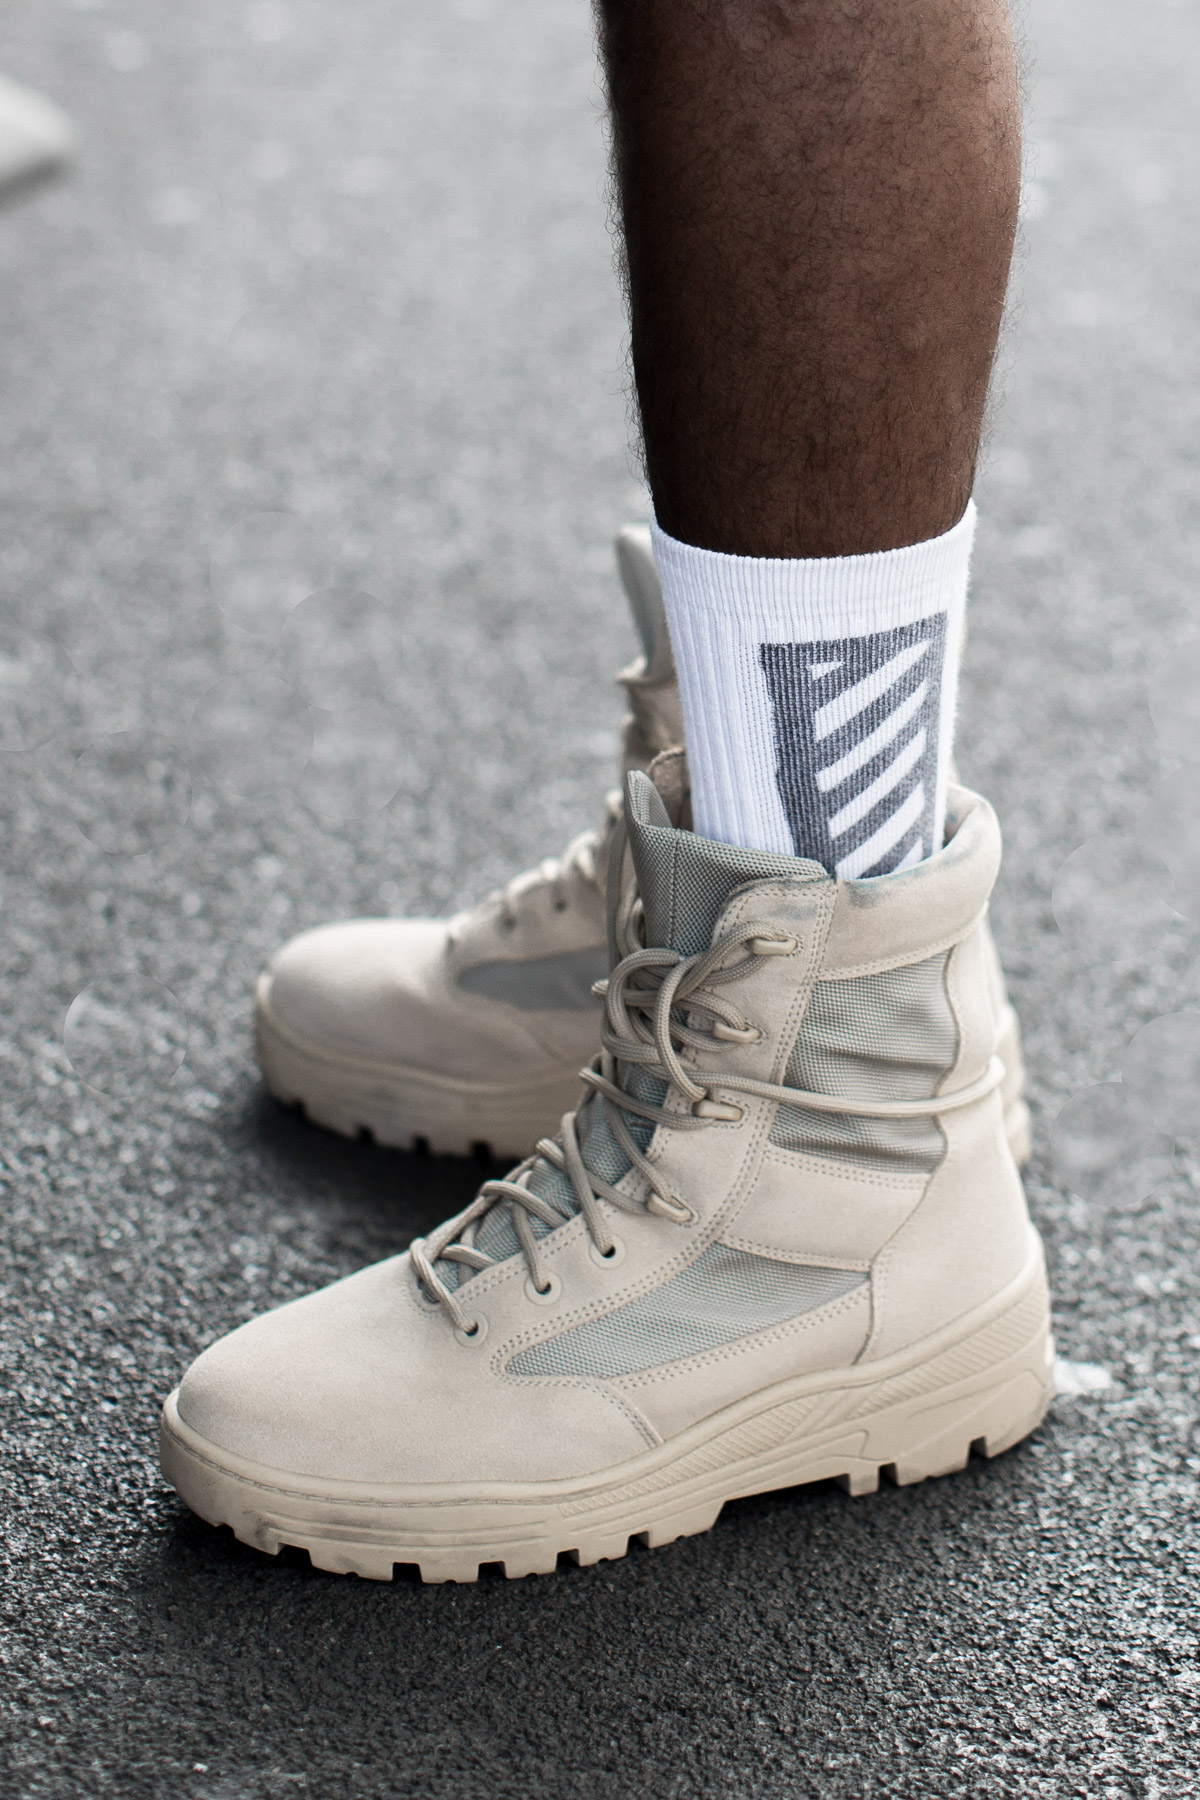 Street Style Picture of the Yeezy Boots